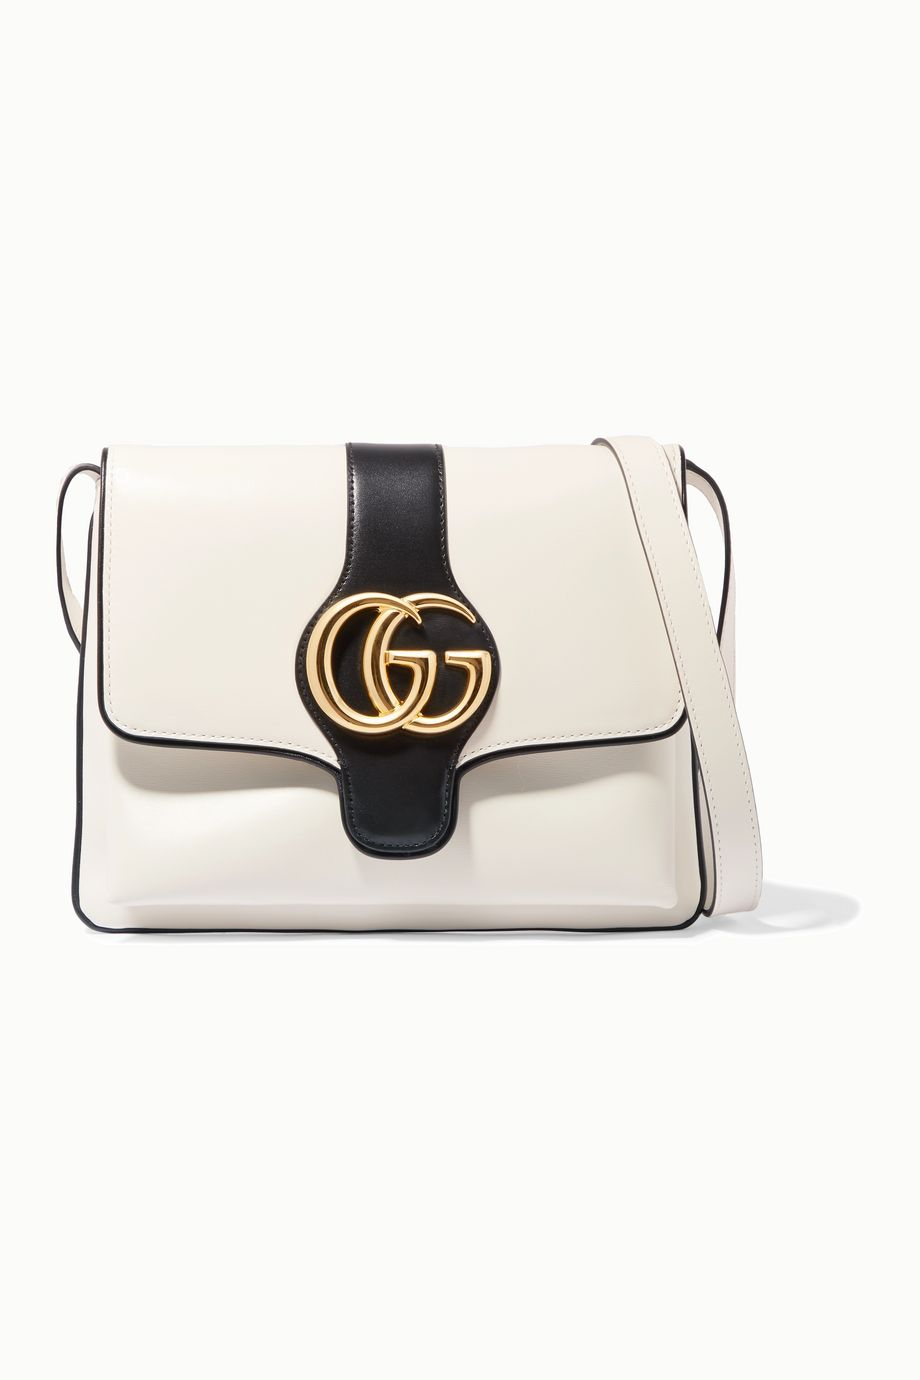 Gucci Arli small two-tone leather shoulder bag